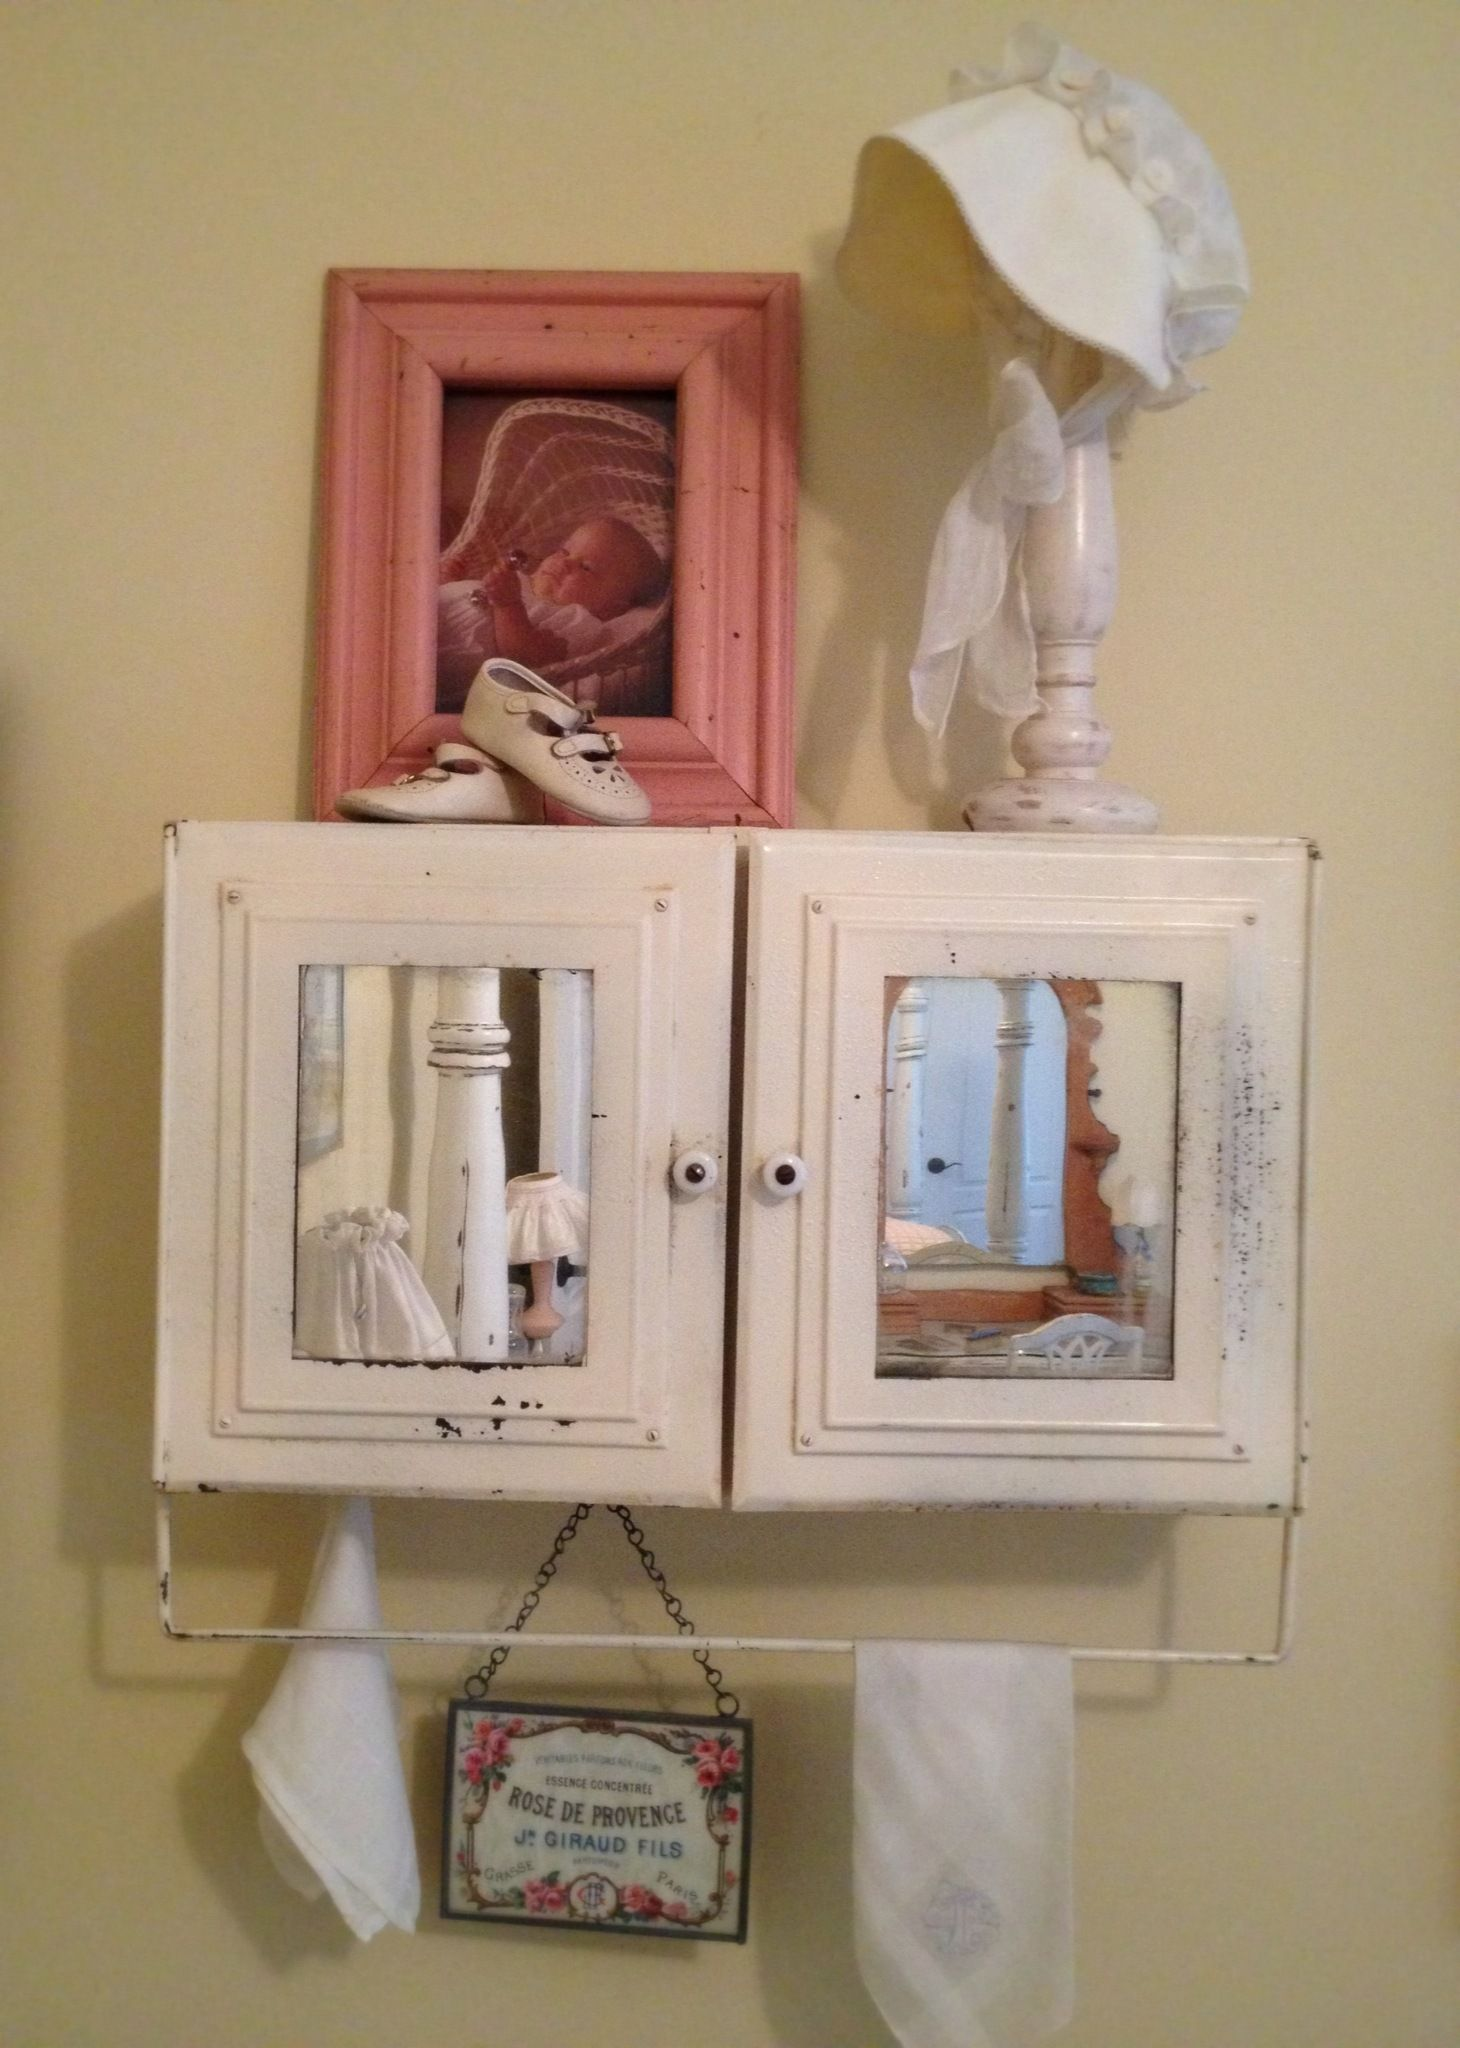 Lovely Antique Hanging Medicine Cabinet. Picture Of My Daughter And Her Baby Shoes.